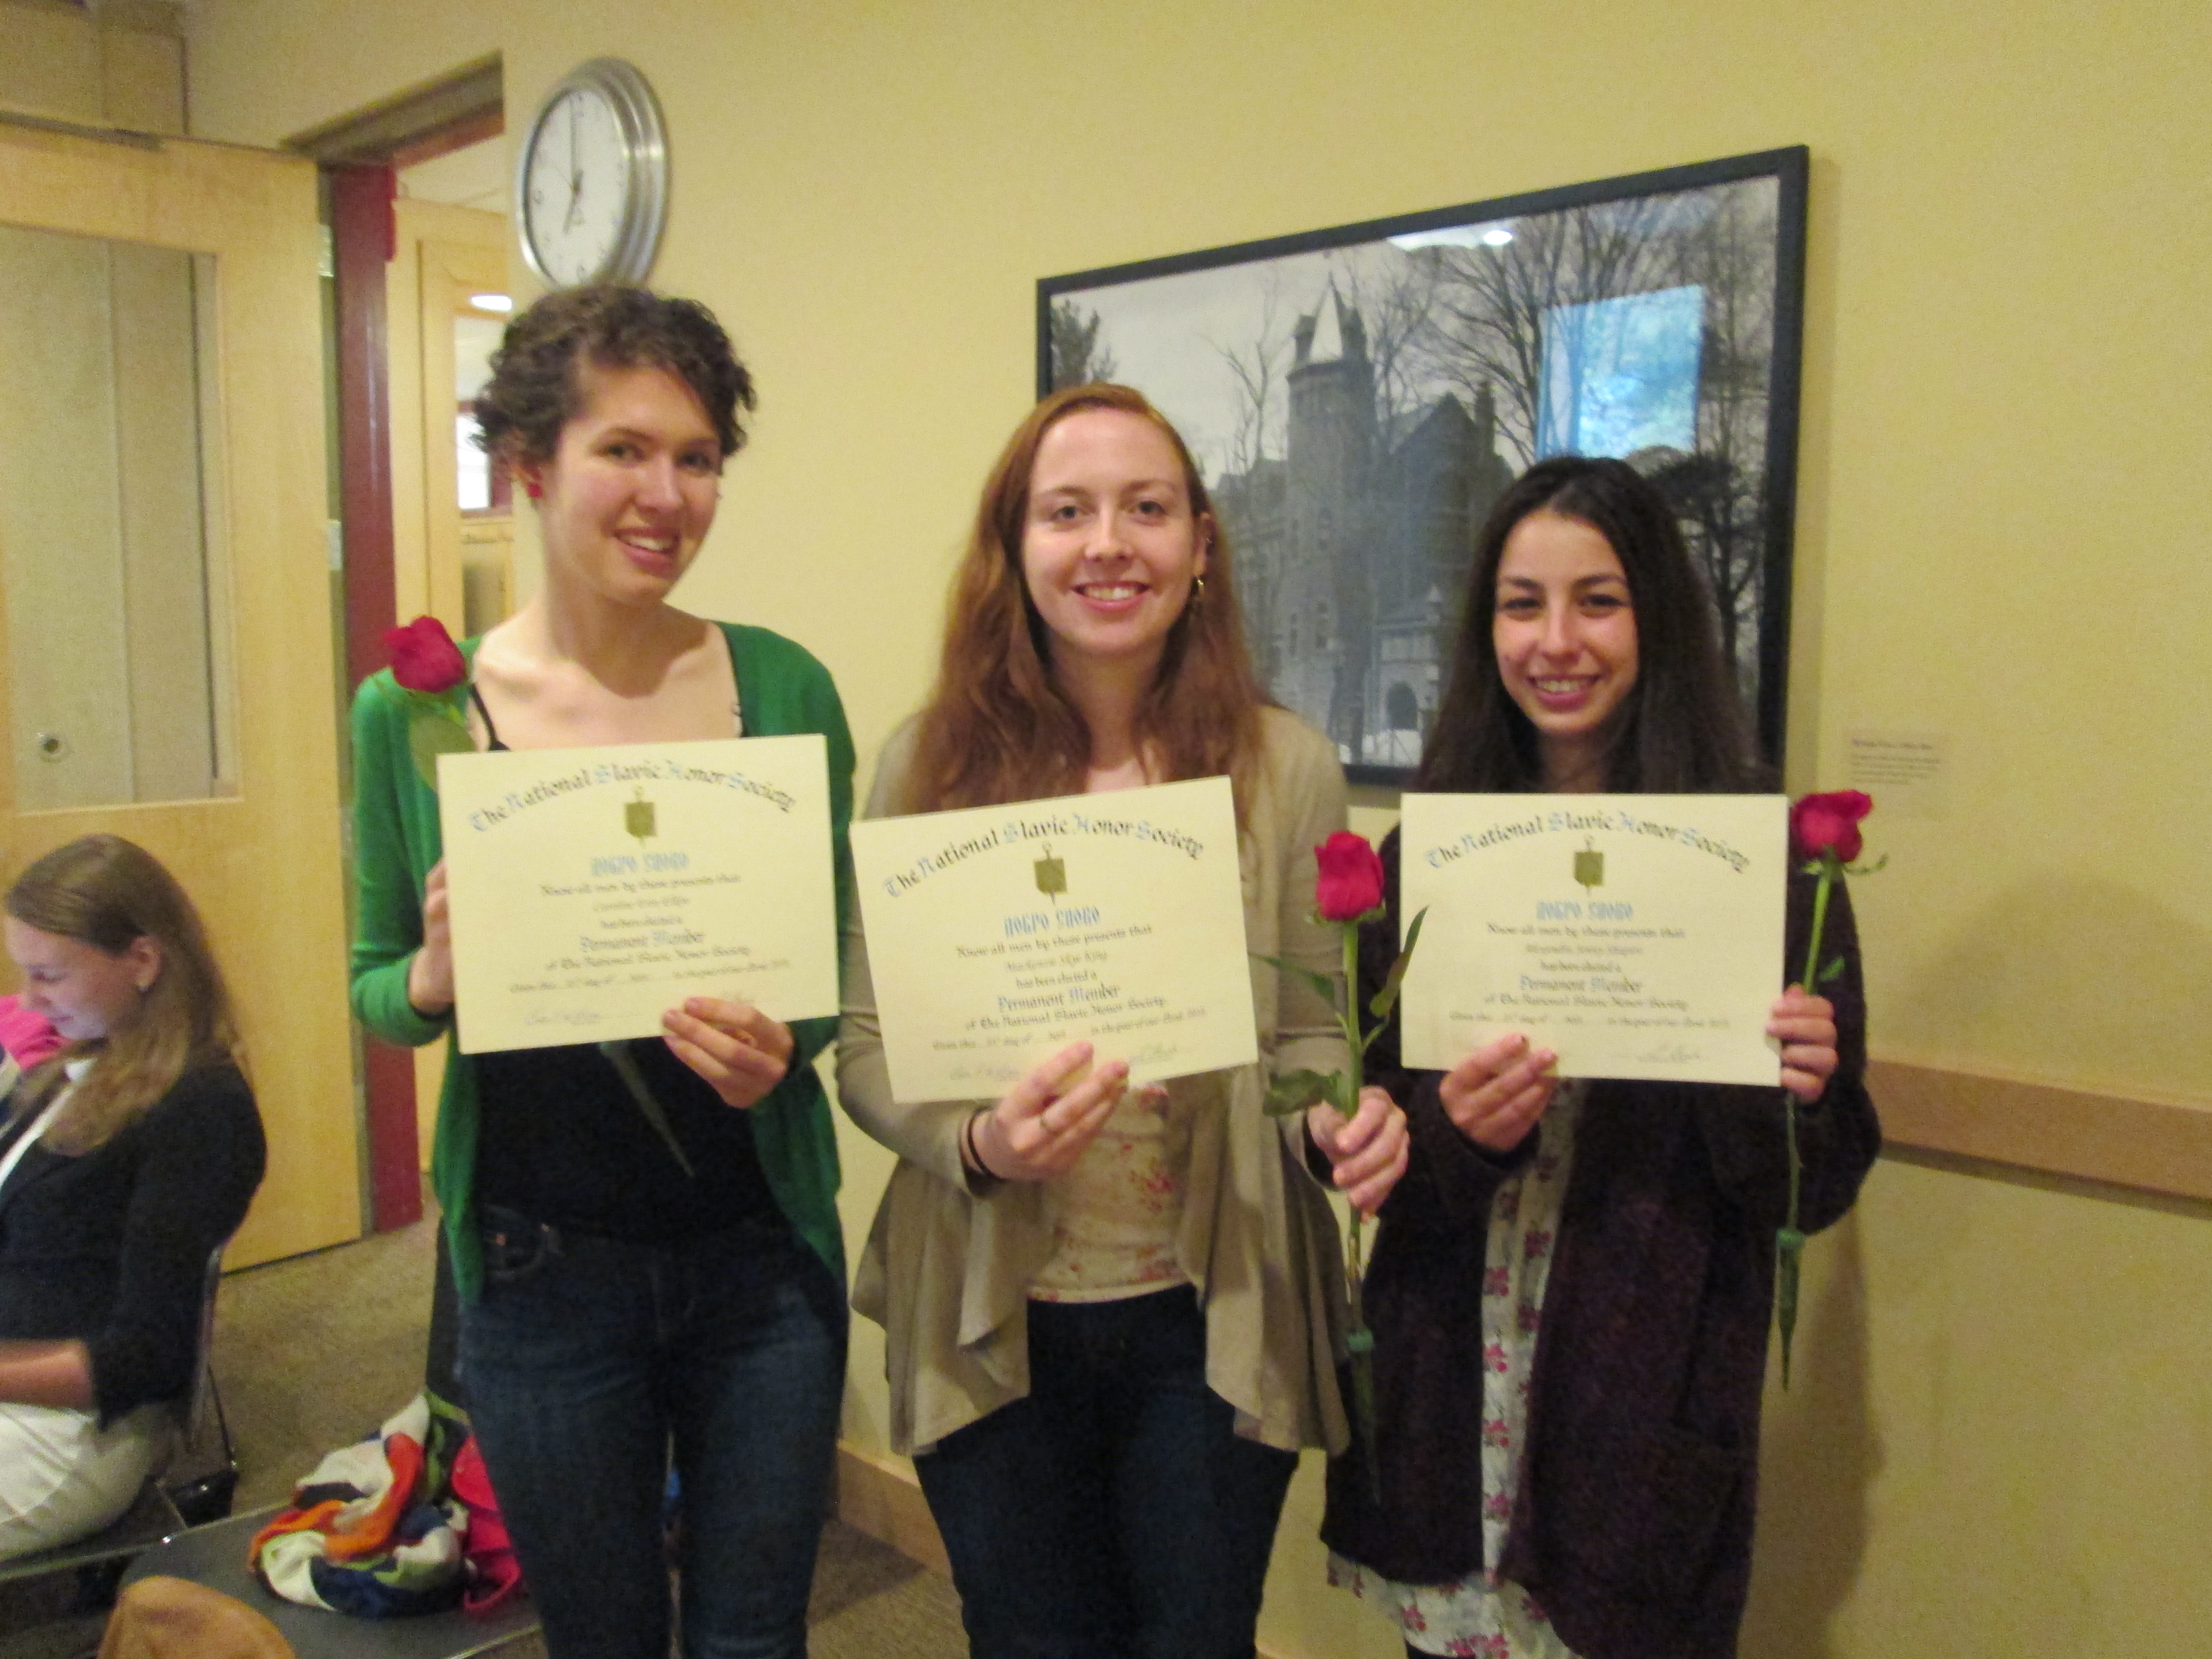 At Russian Table on Tuesday, April 28, three graduating seniors in the Russian Department were inducted to the Dobro Slovo National Slavic Honor Society. Caroline Elkin, Mackenzie King, and Alexandra […]